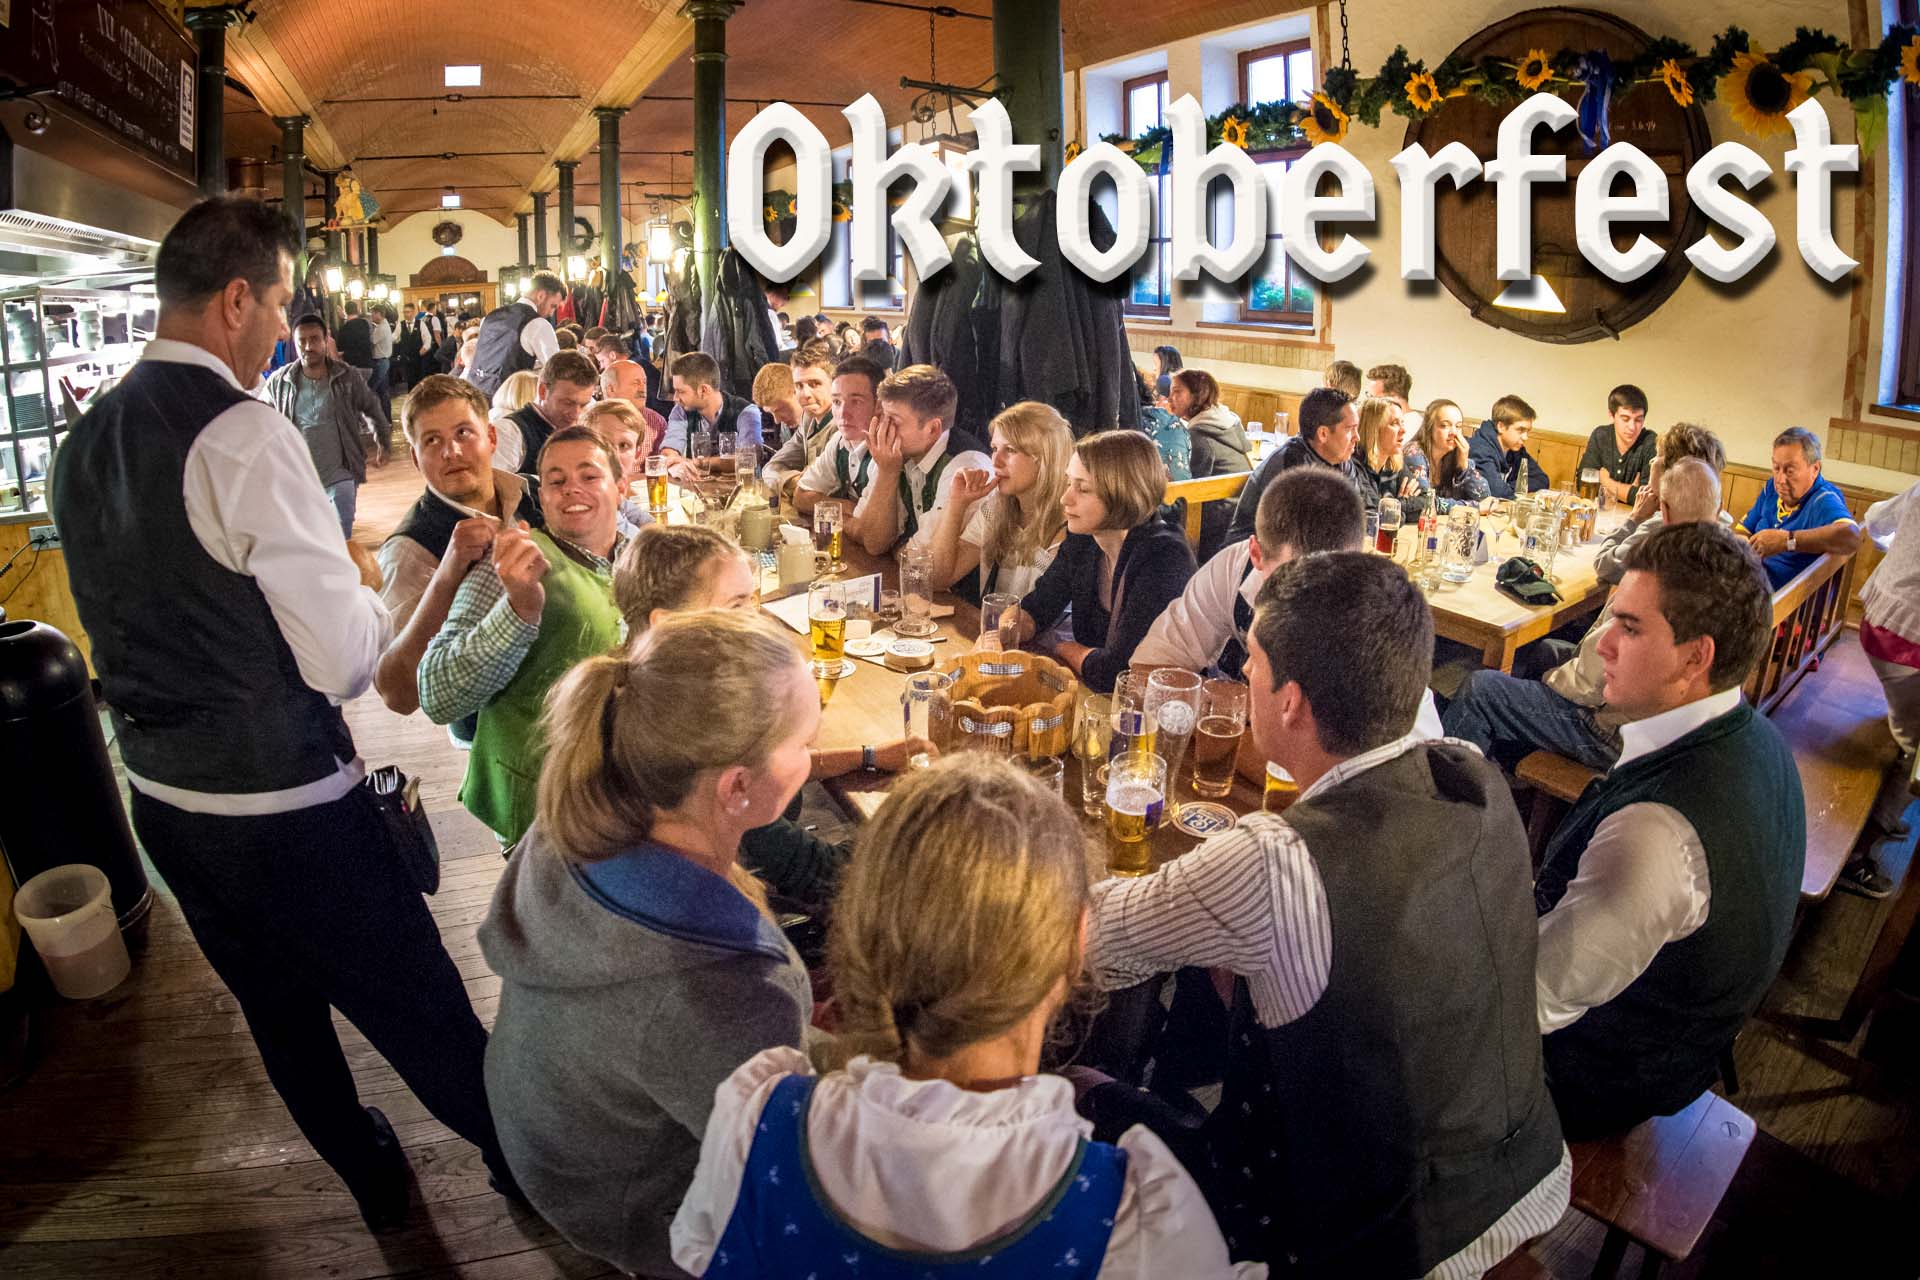 worktops special offer oktoberfest october november 2020 quartz granite worktops Croatia-holiday-170726-192003a a